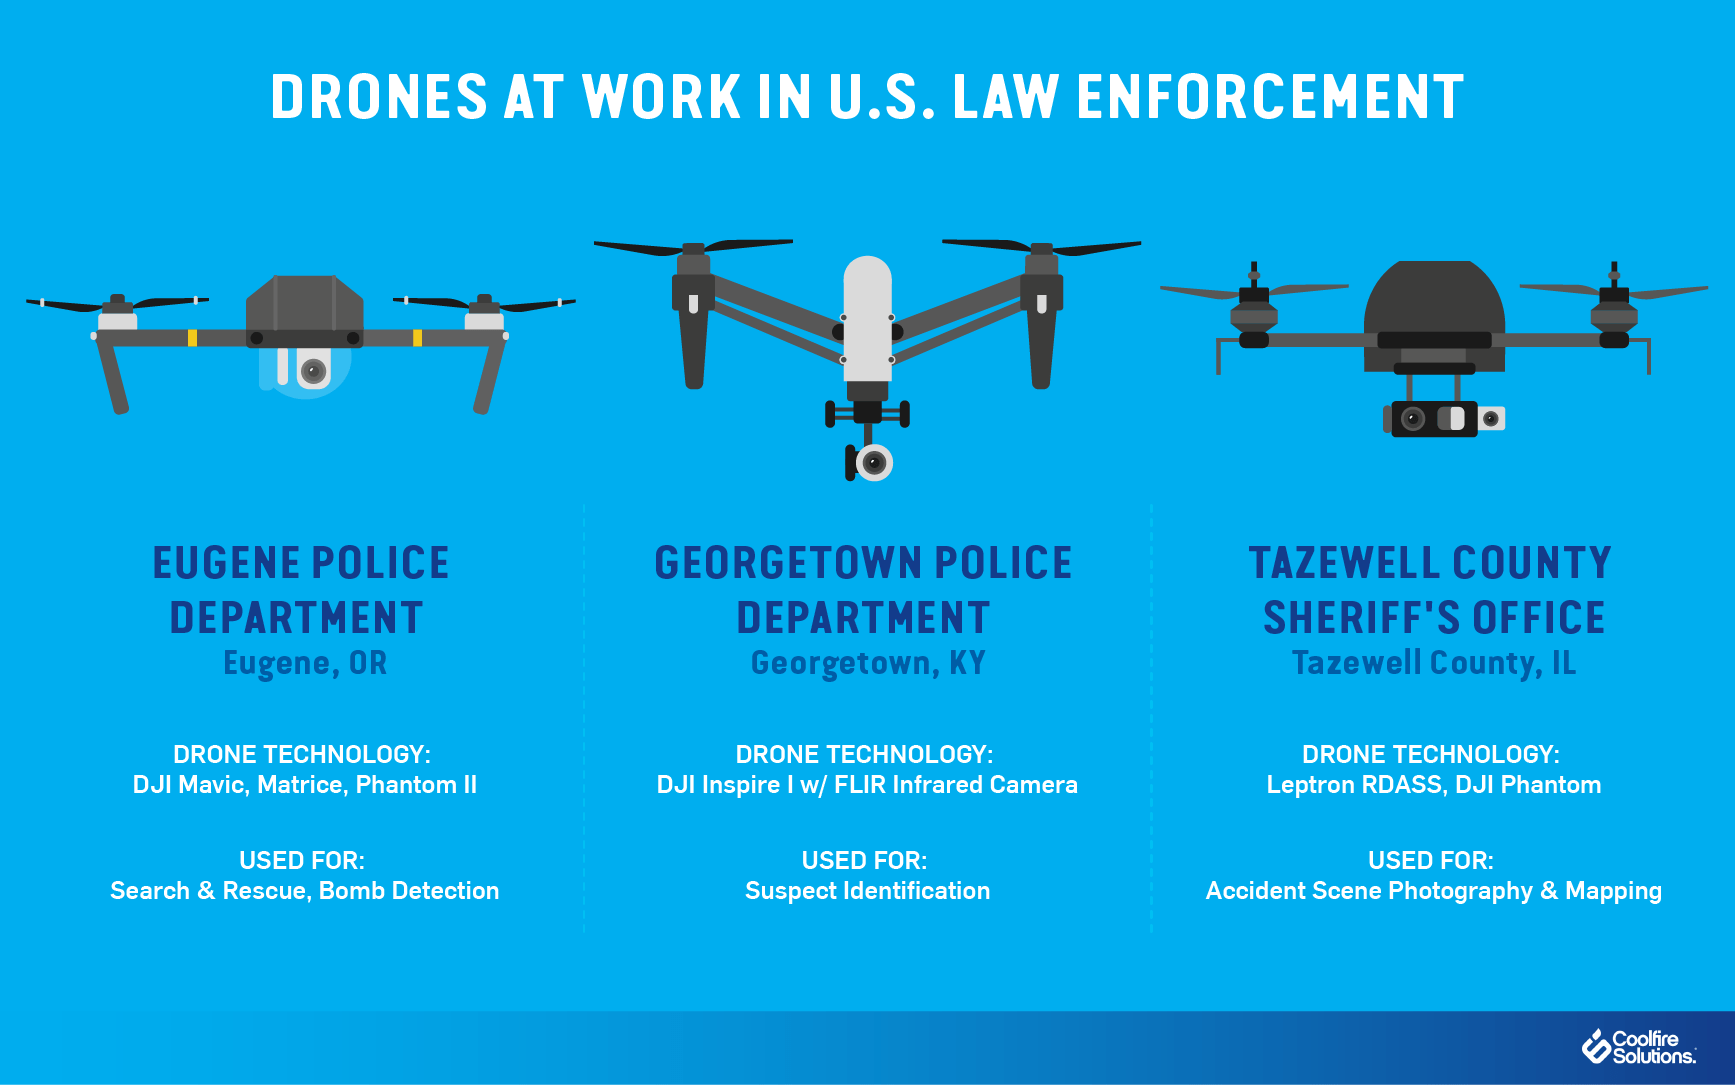 drones-used-in-us-law-enforcement